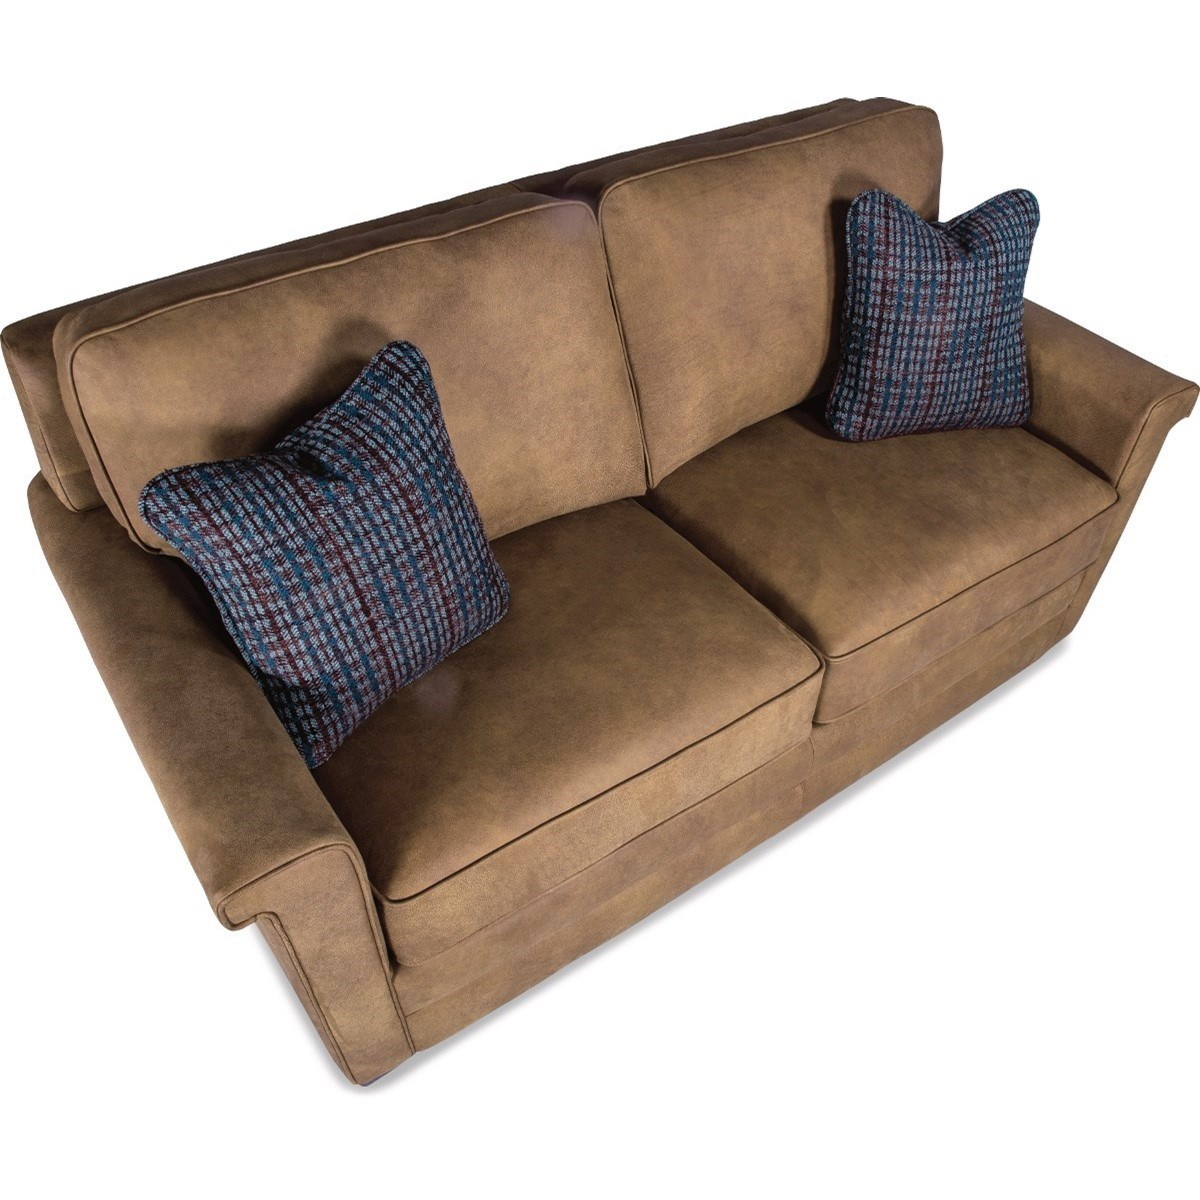 Contemporary apartment size sofa by la z boy wolf furniture - Apartment size sectional sofa ...